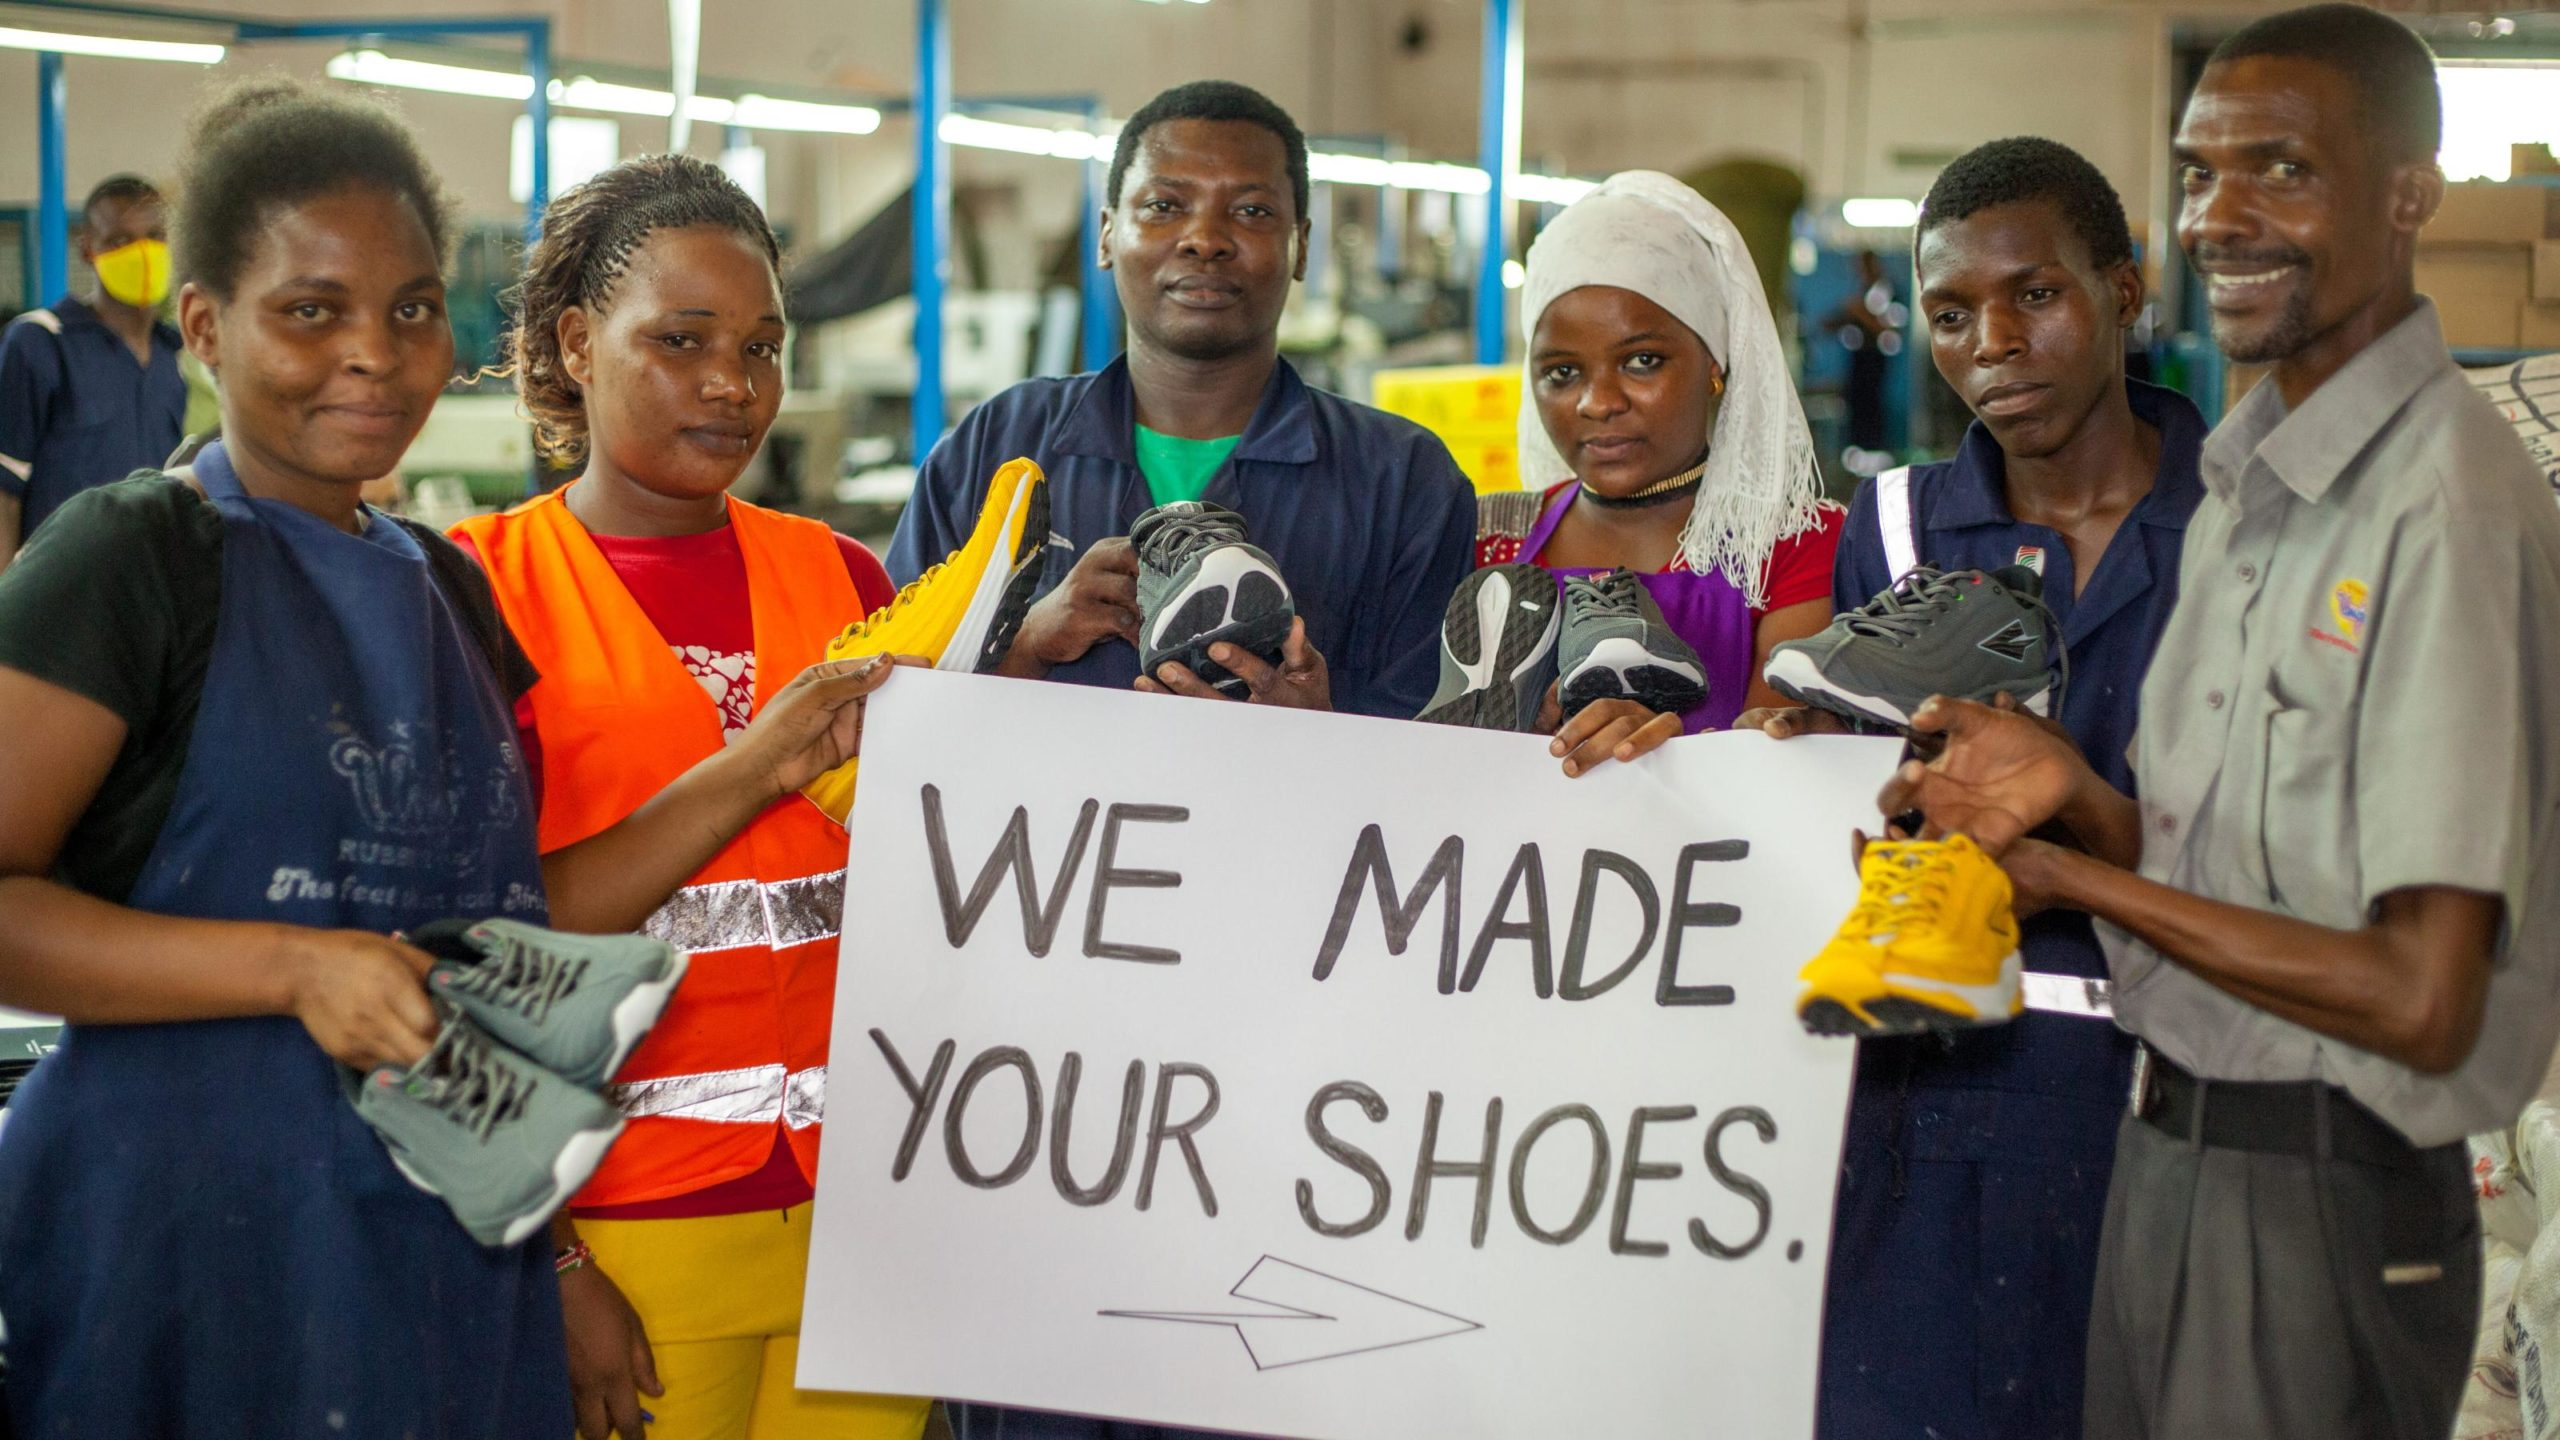 Kenya has world-class runners but investors have been hesitant to back locally-made running shoes – Quartz (image)